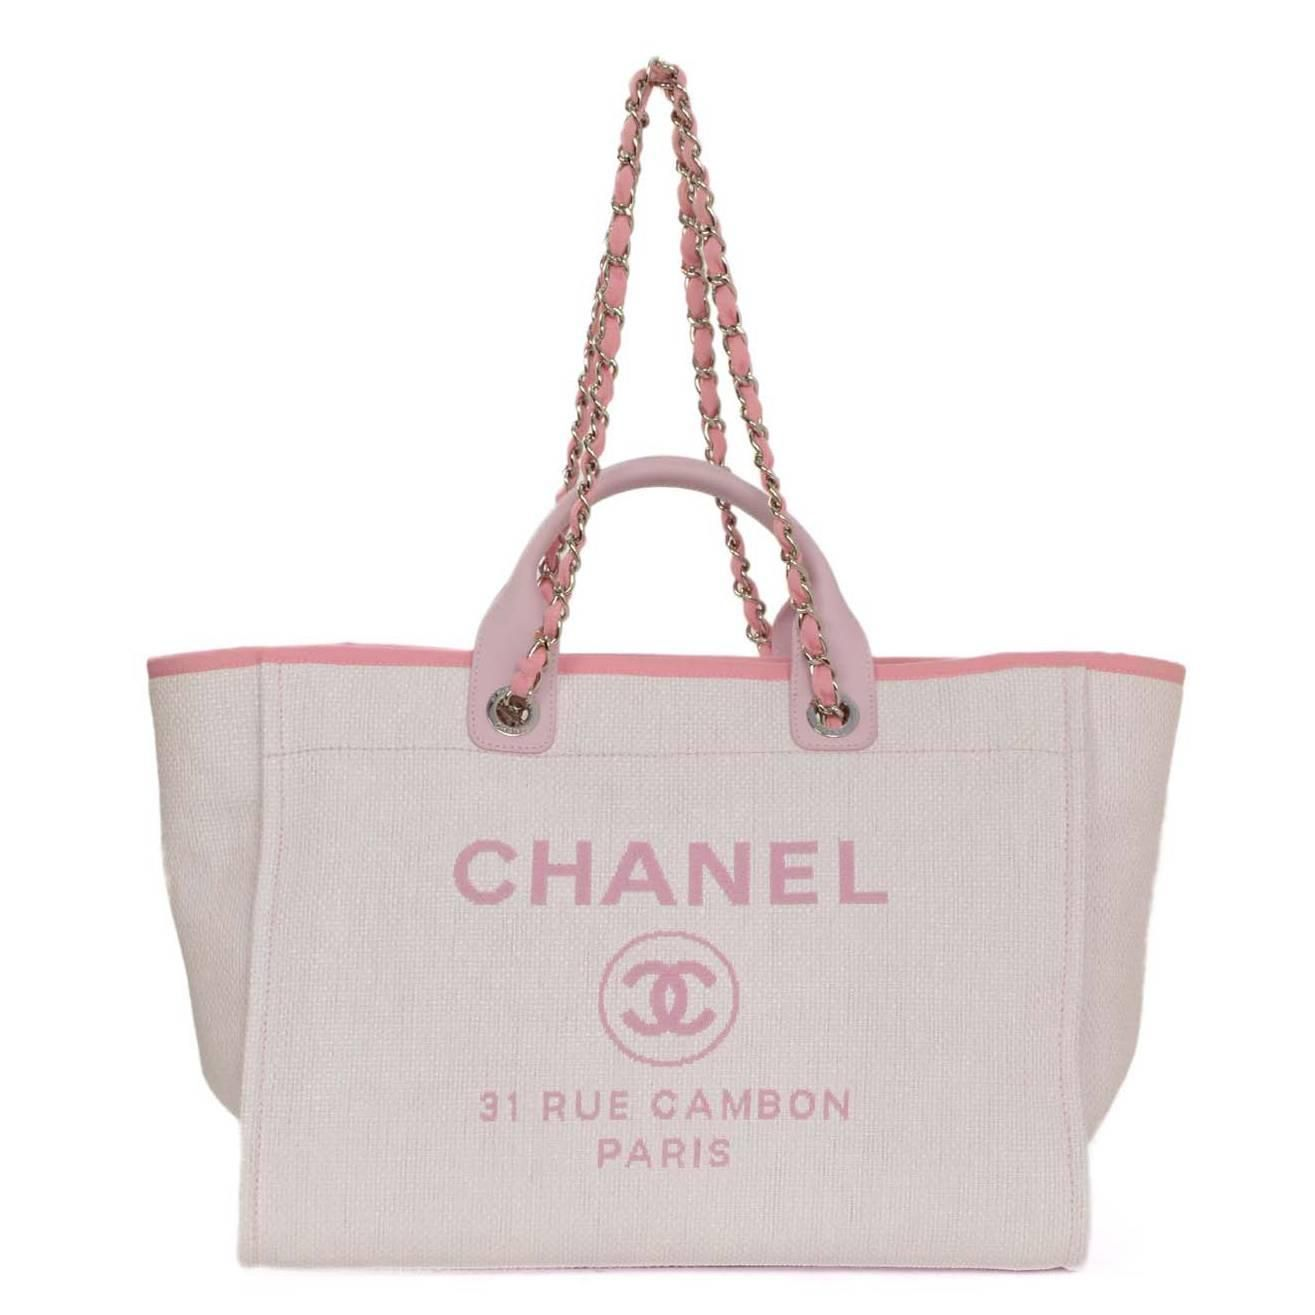 c3d6eec23fa0f Chanel Pink Canvas Deauville Tote Bag SHW